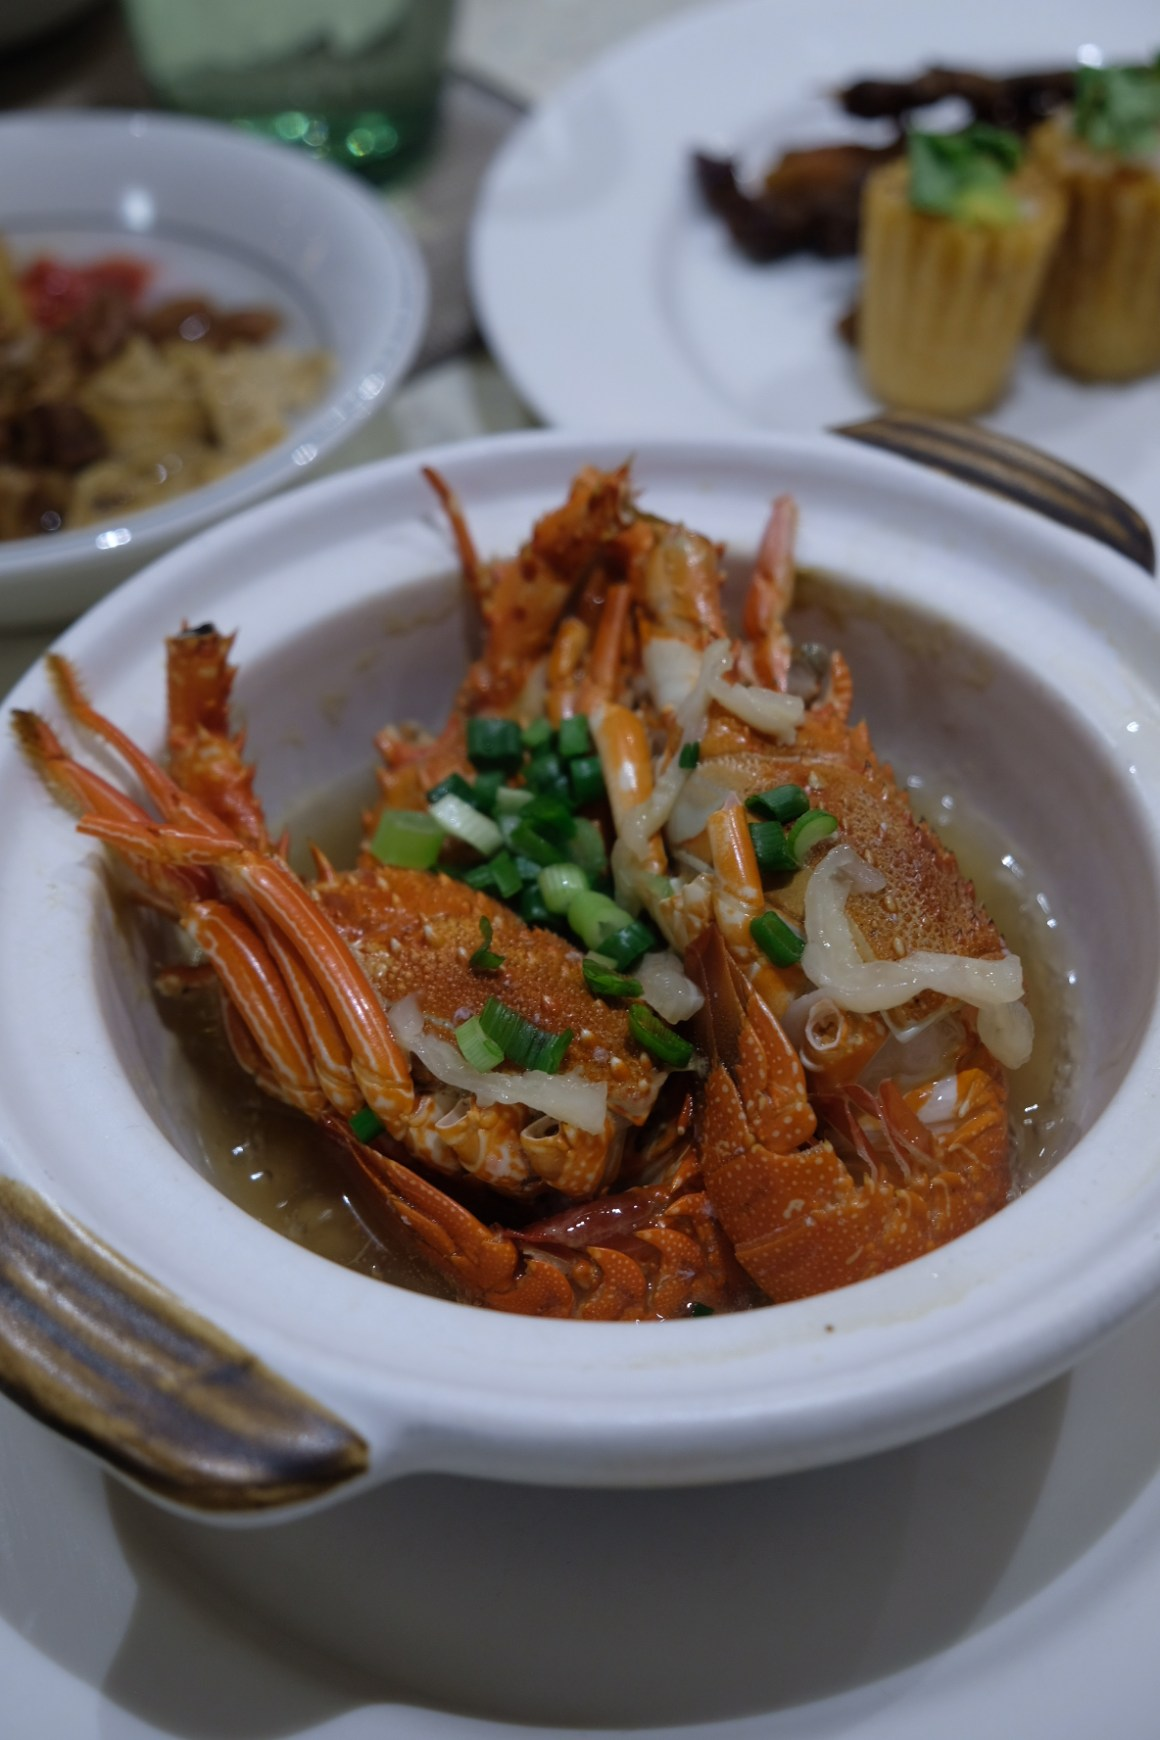 Heritage Flavours and Premium Madness Buffet At Ginger, PARKROYAL On Beach Road - Rock Lobster